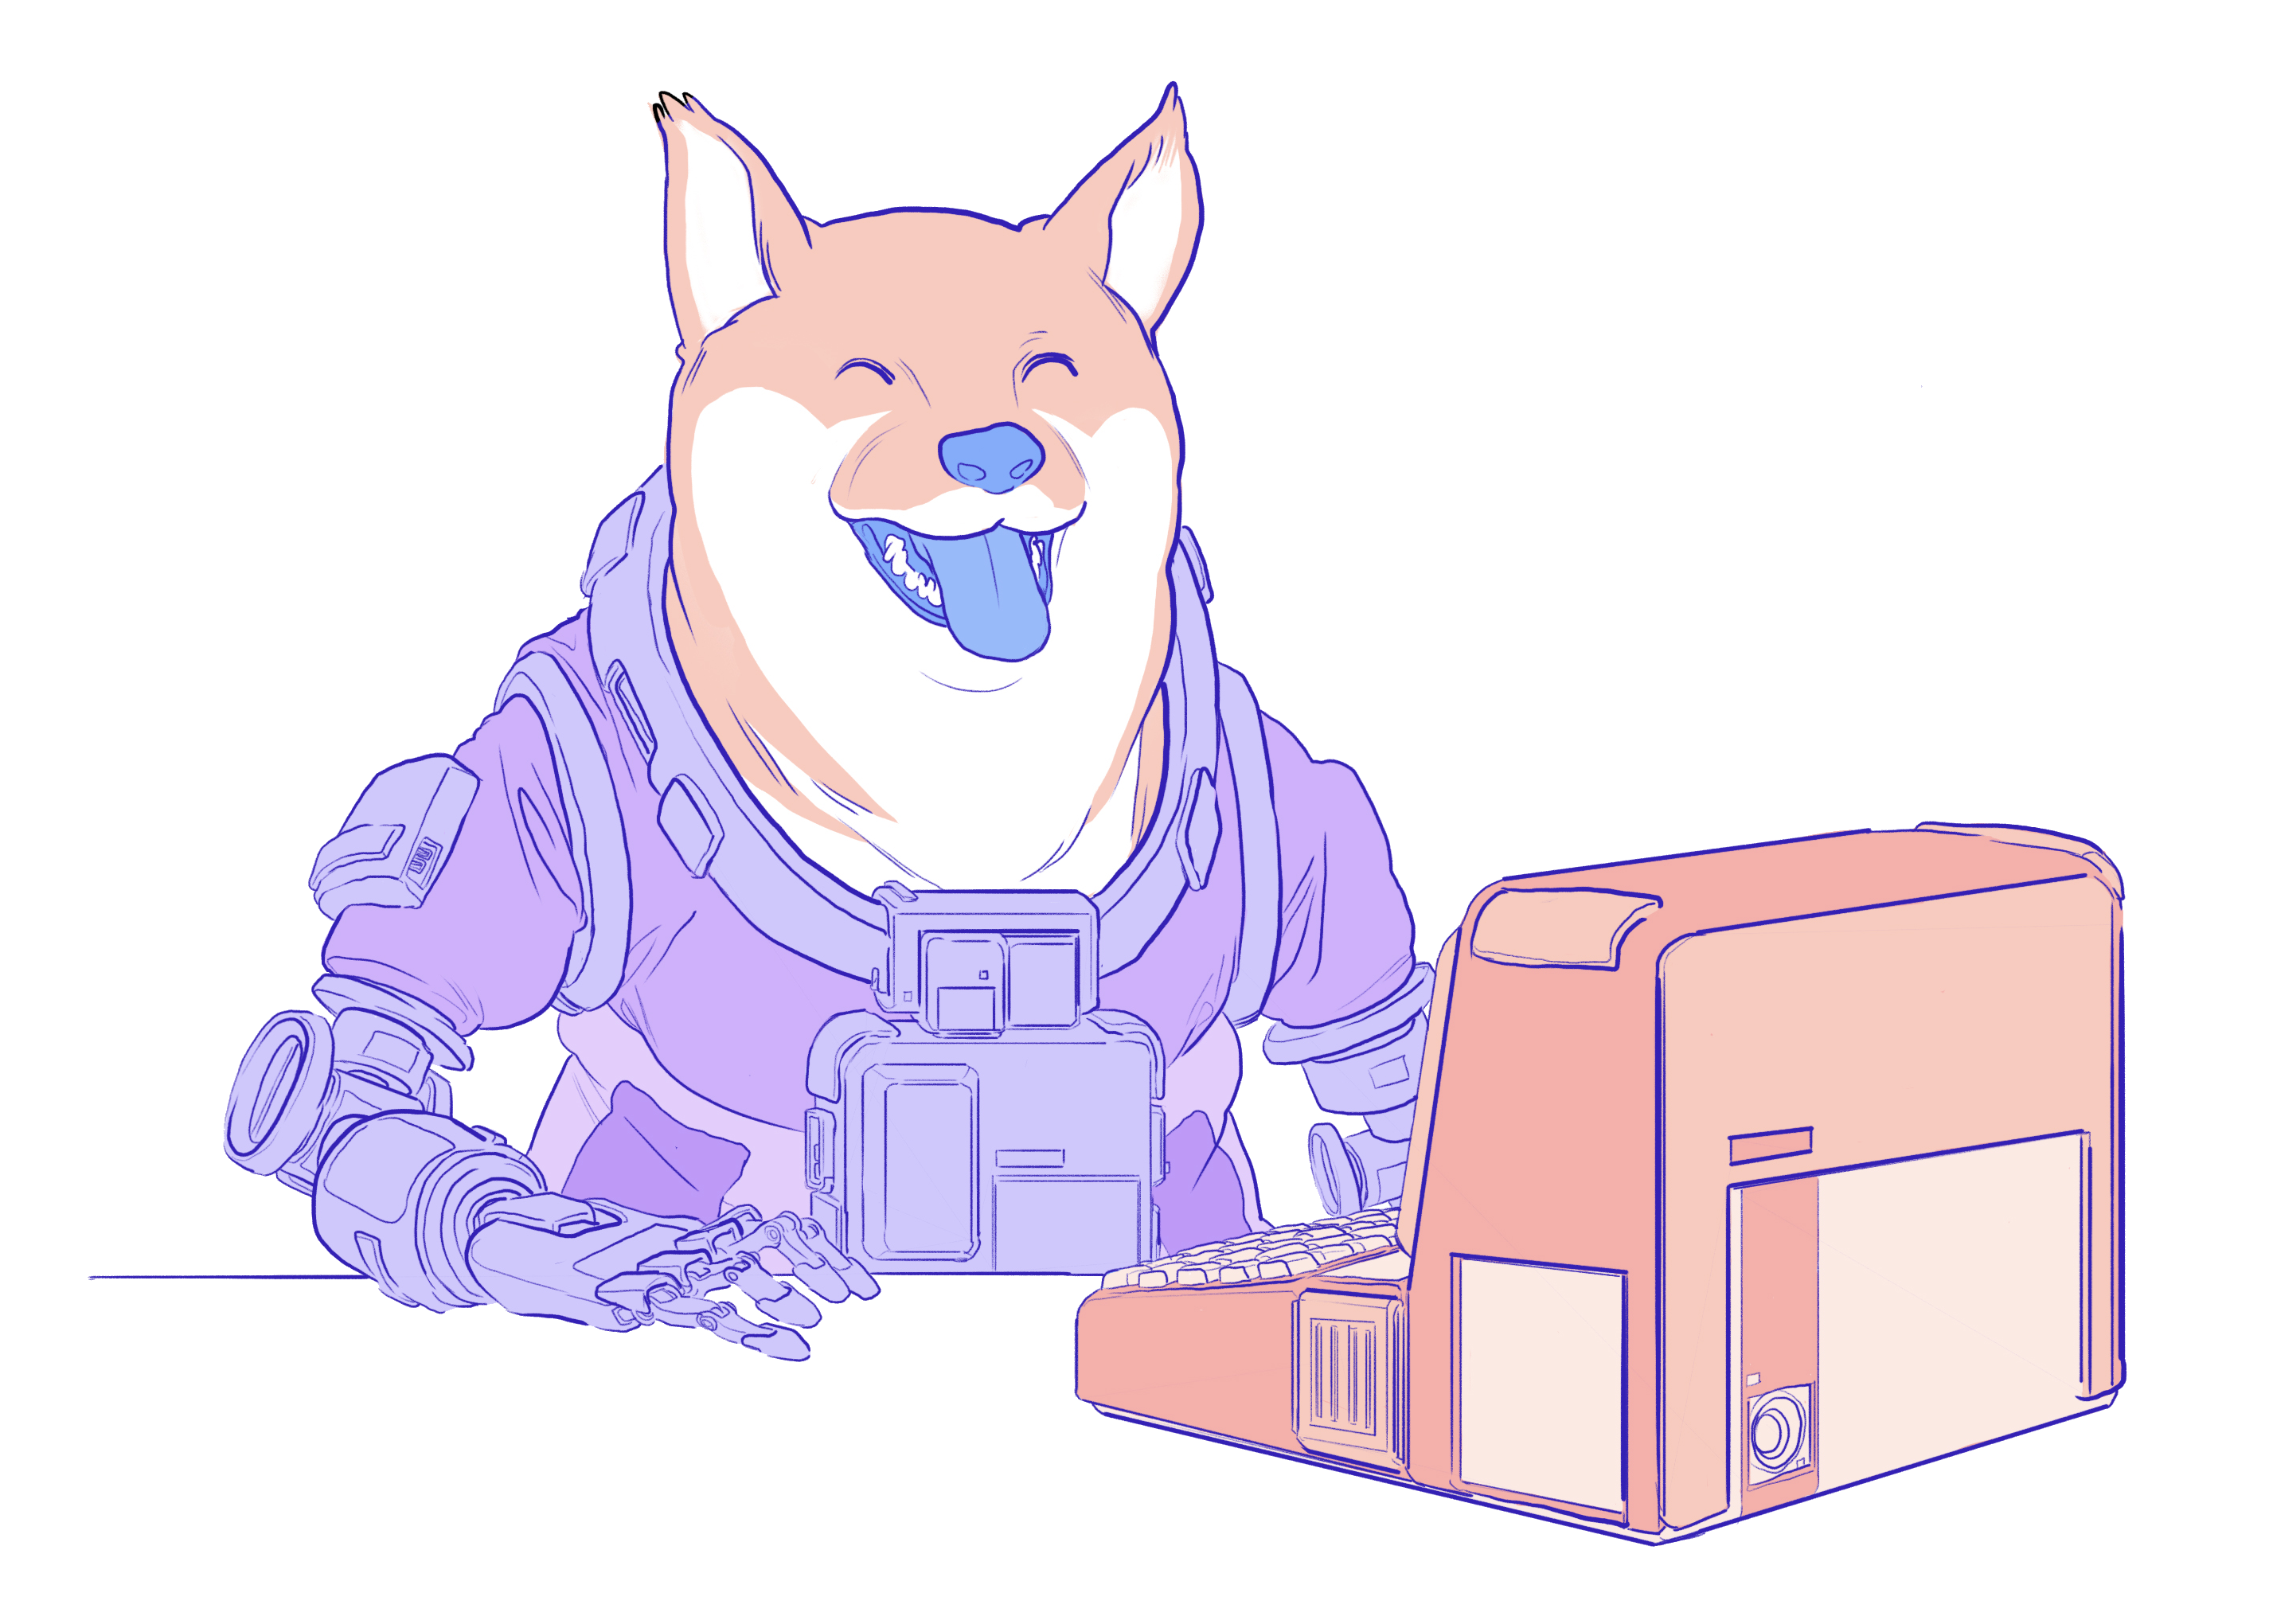 Illustration of a doge using a dapp on a computer